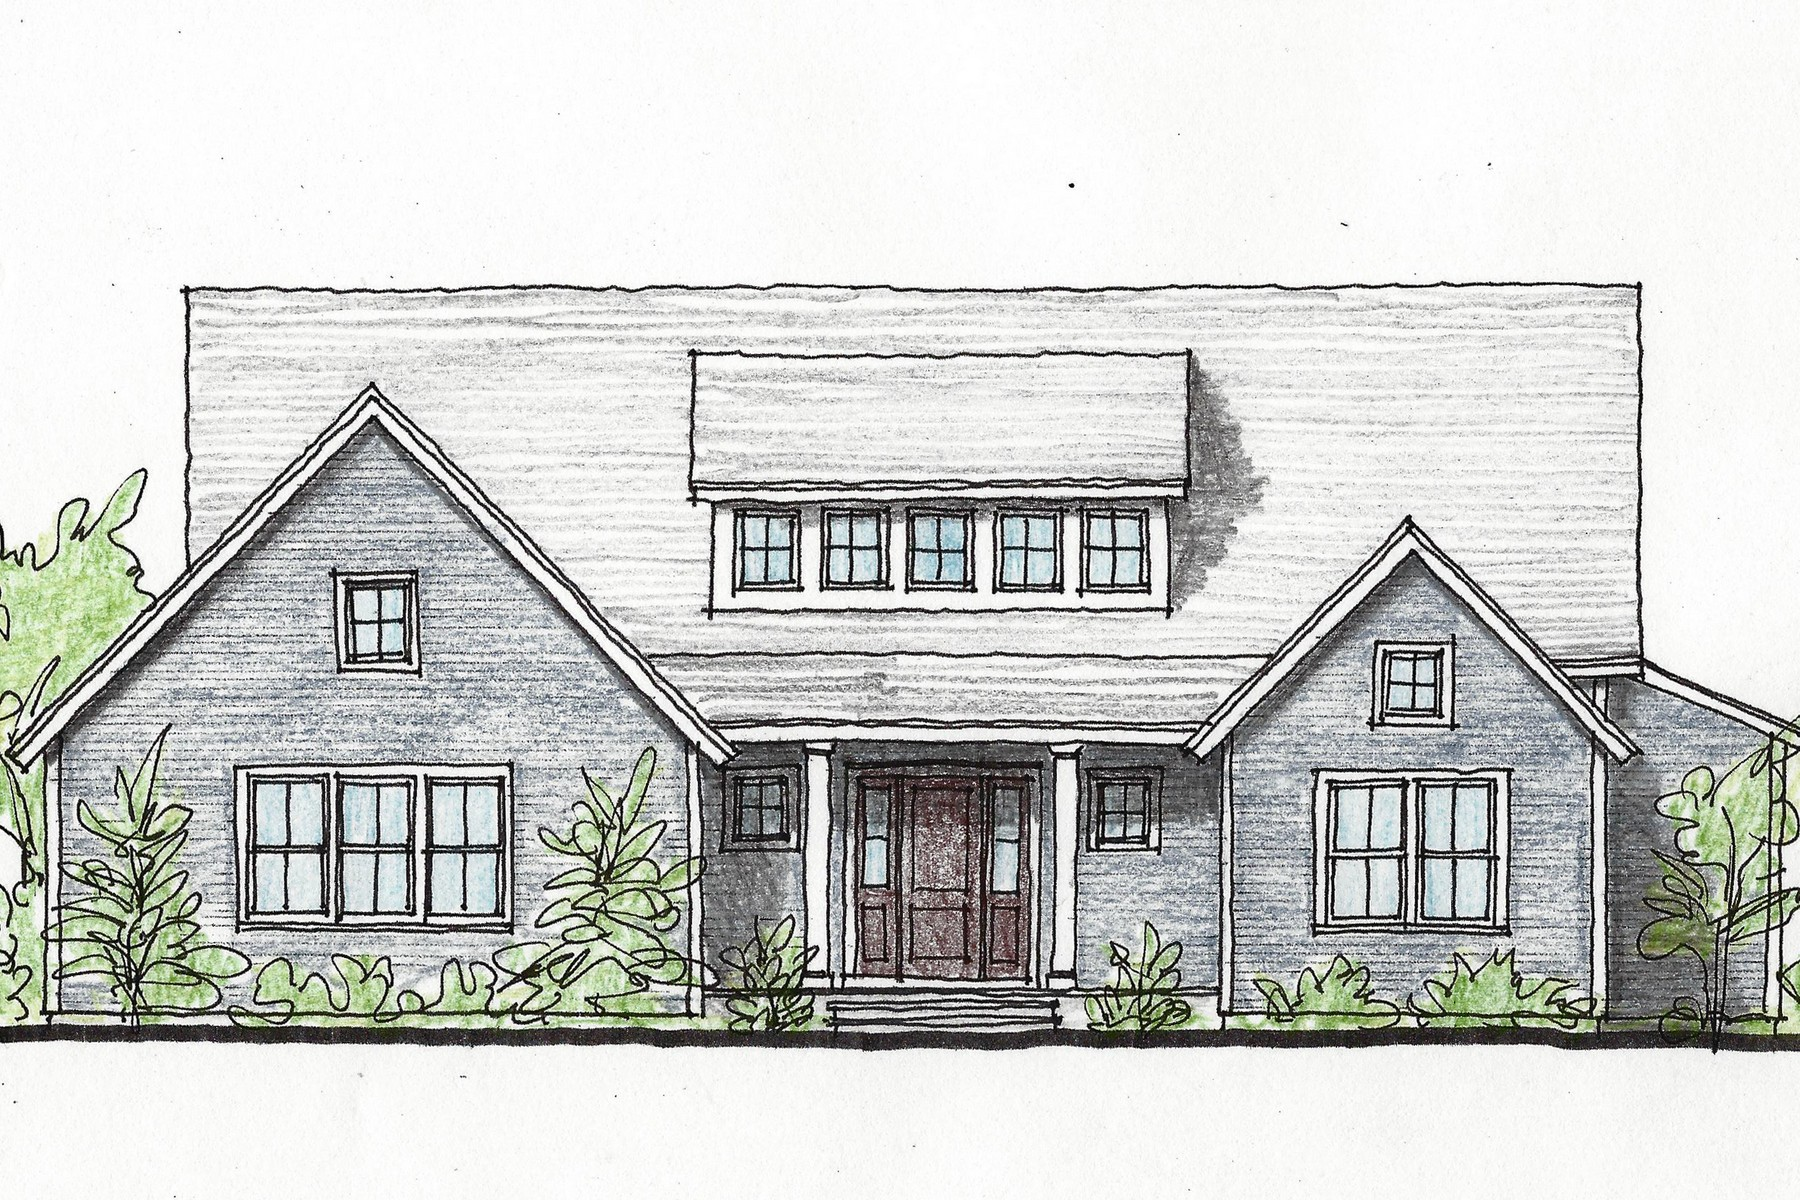 Single Family Homes for Sale at Nothing Better Than New Construction! 5a Hoopole Hill Road Deep River, Connecticut 06417 United States